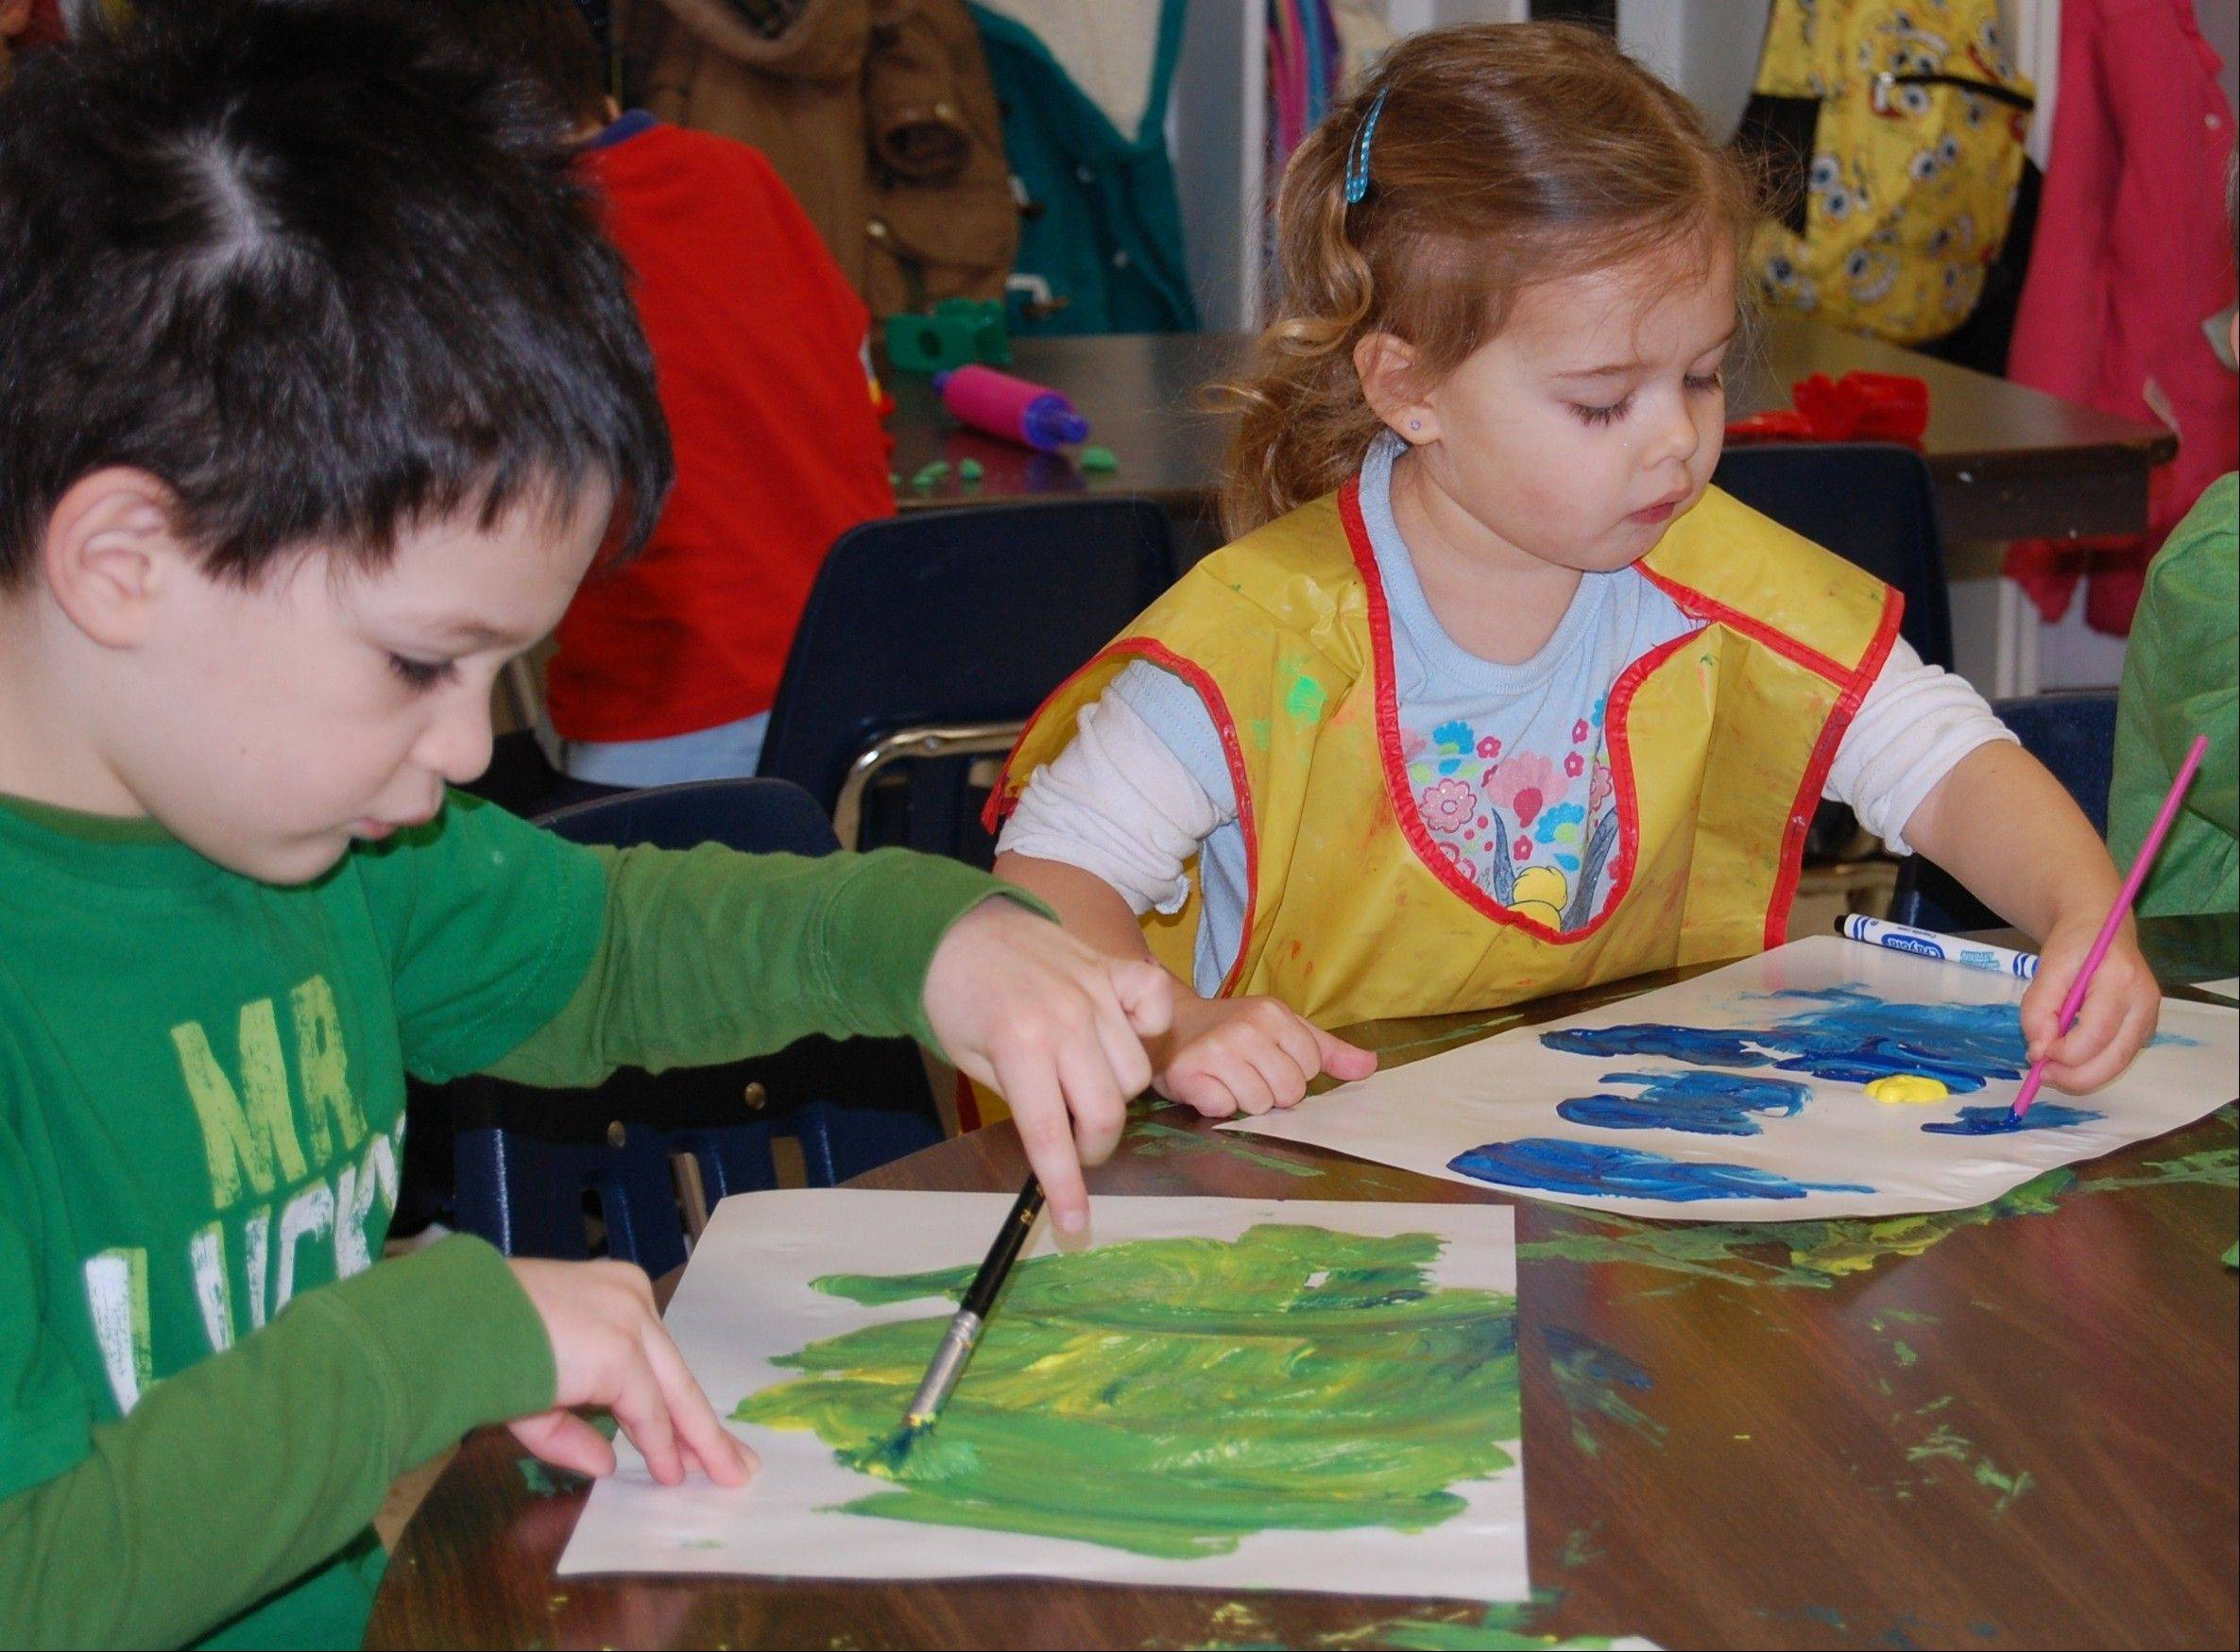 The Hoffman Estates Park District will host a Taste of Preschool from 9:30 to 10:30 a.m. Monday, Feb. 17. Come sample a mini preschool class and see what preschool is all about.